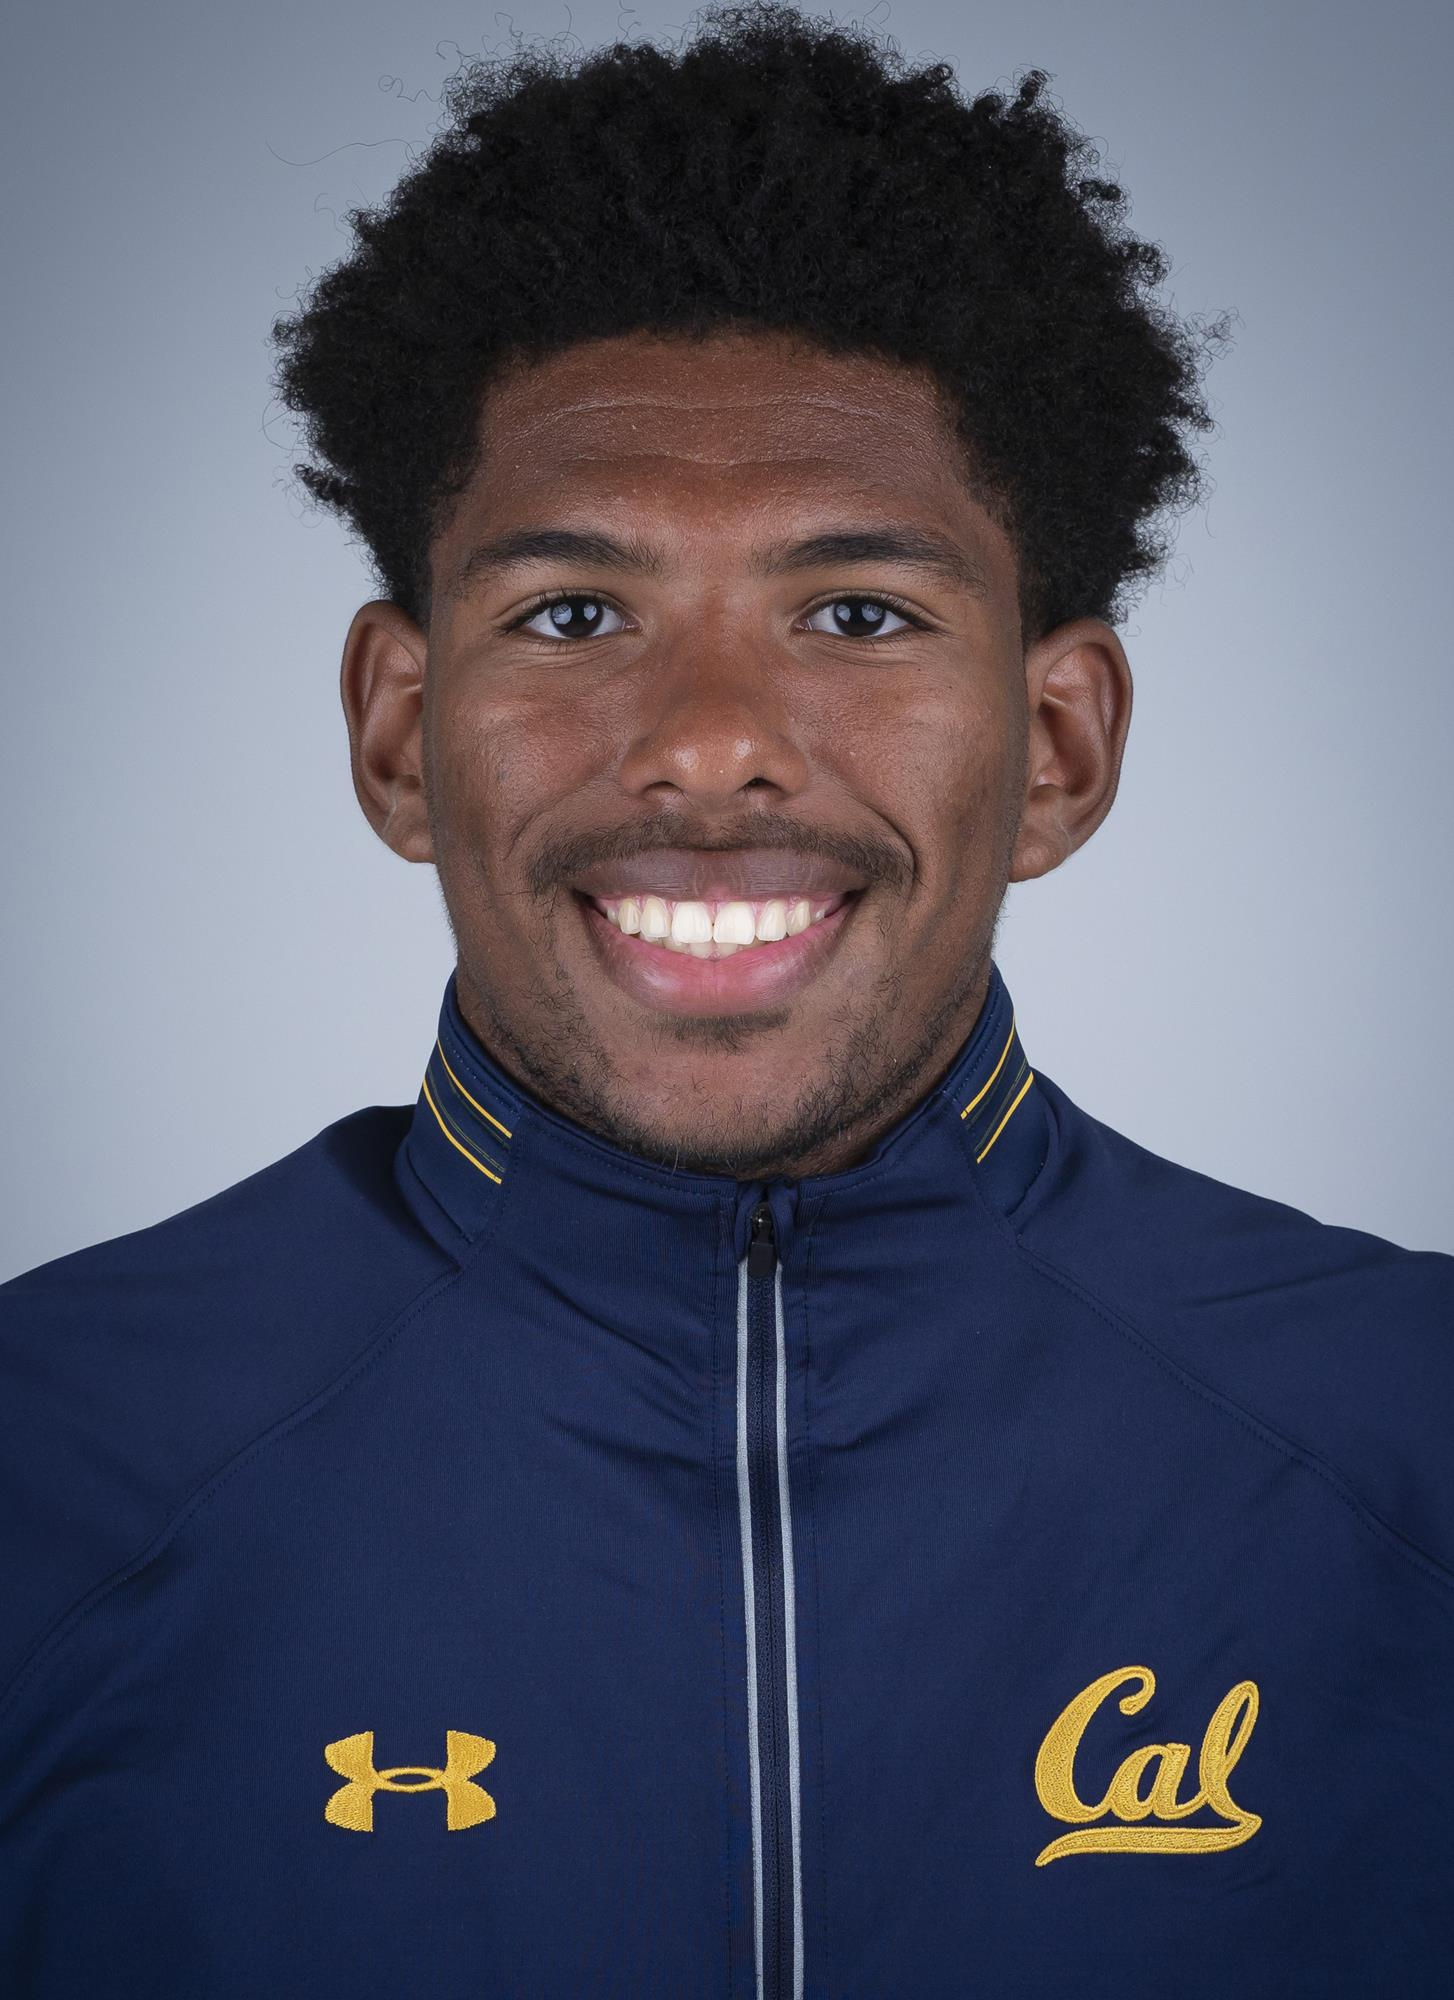 2019 Track & Field Roster - University of California Golden